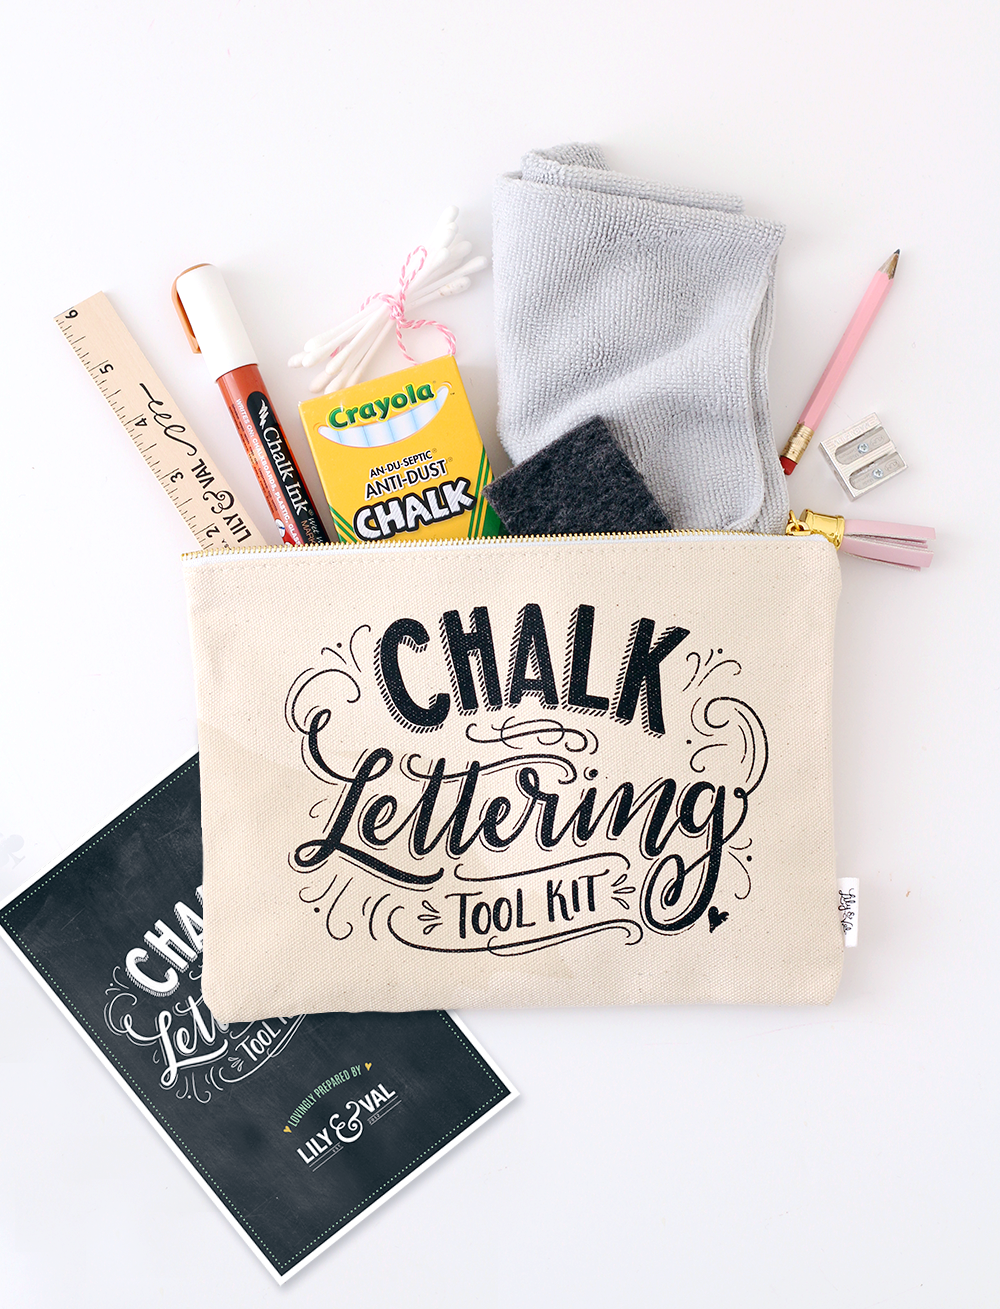 Chalk Lettering Tool Kit: Winner of the Best New Product Award At National Stationery Show